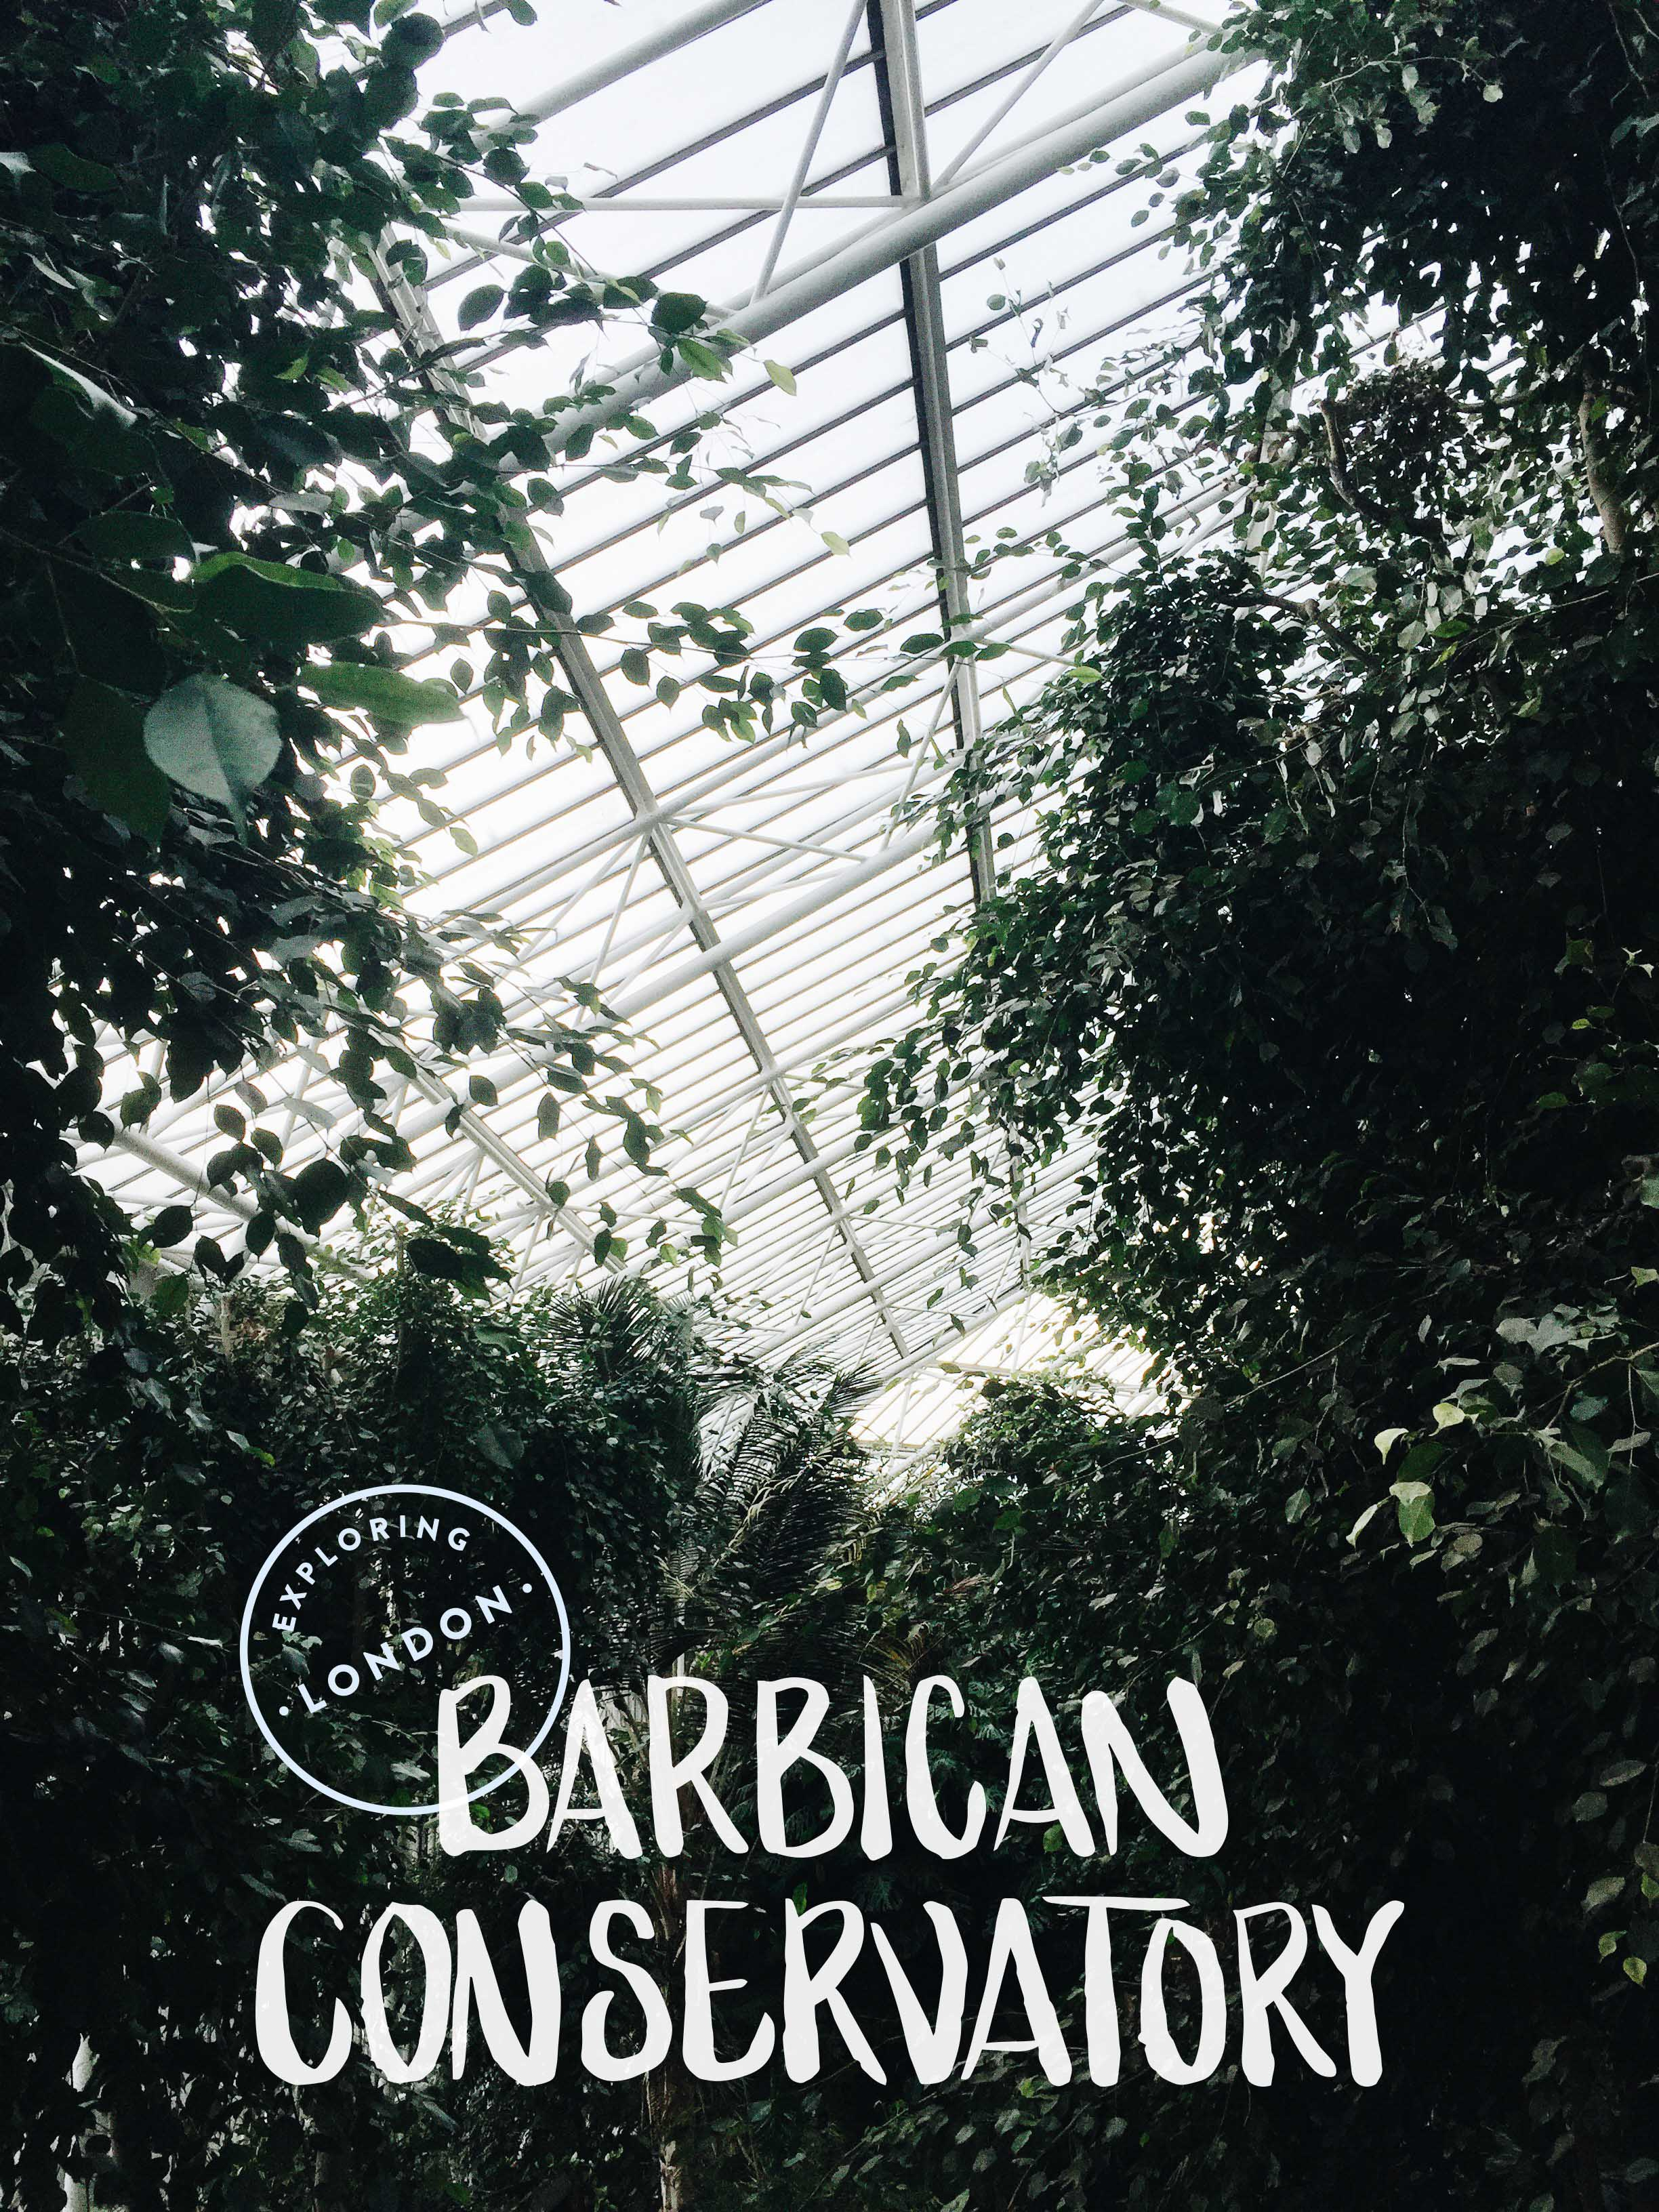 Exploring London · The Barbican Conservatory | Sea of Atlas